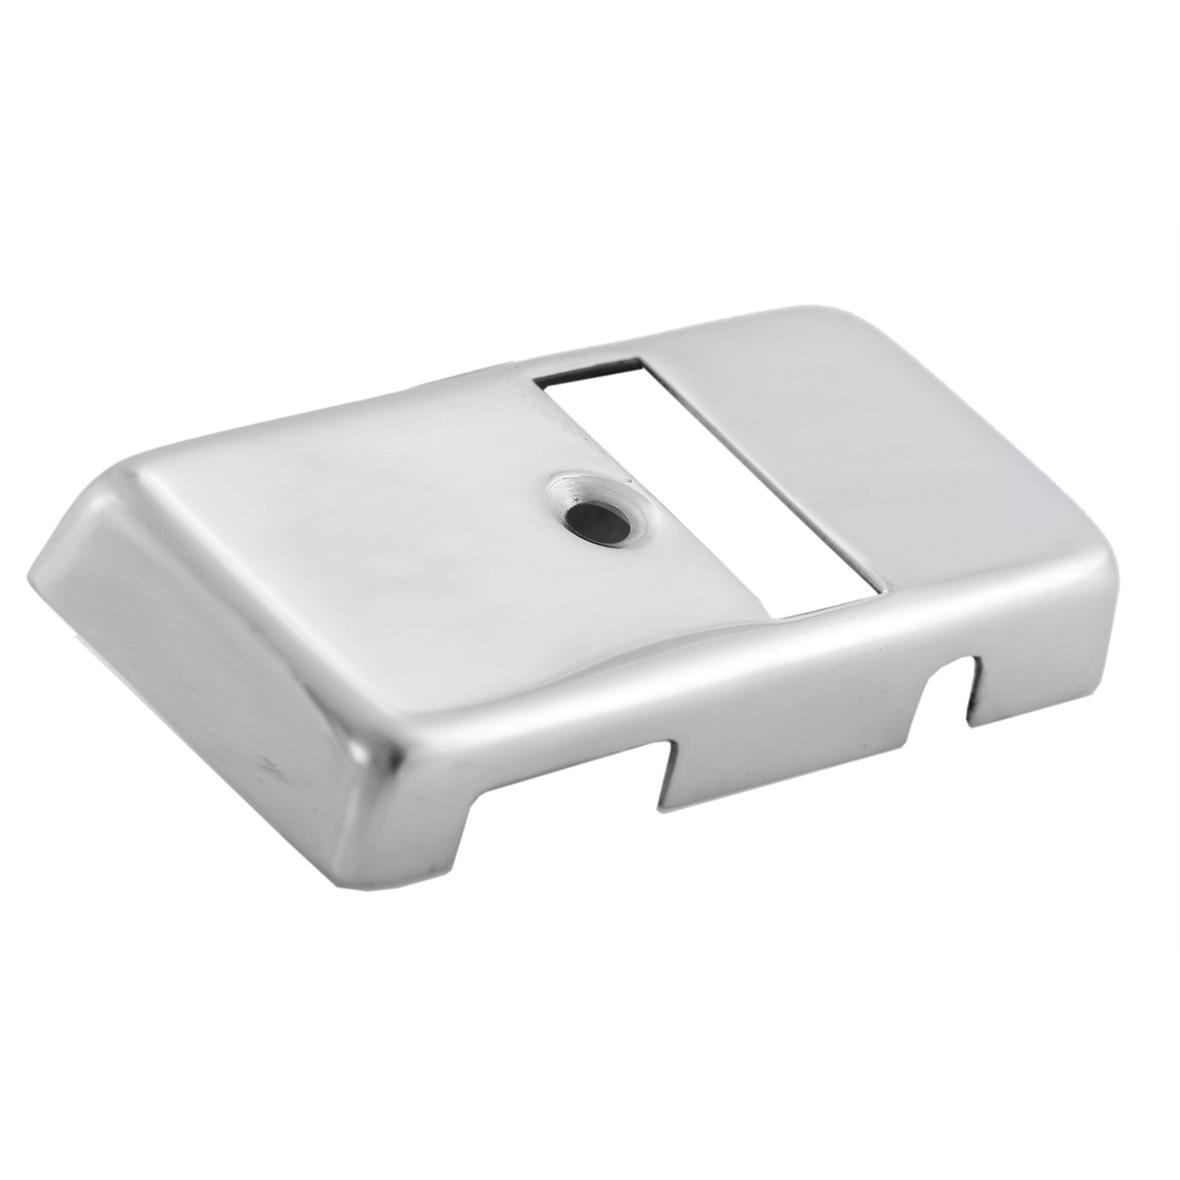 Product Image for 'Cover light switch SIPTitle'